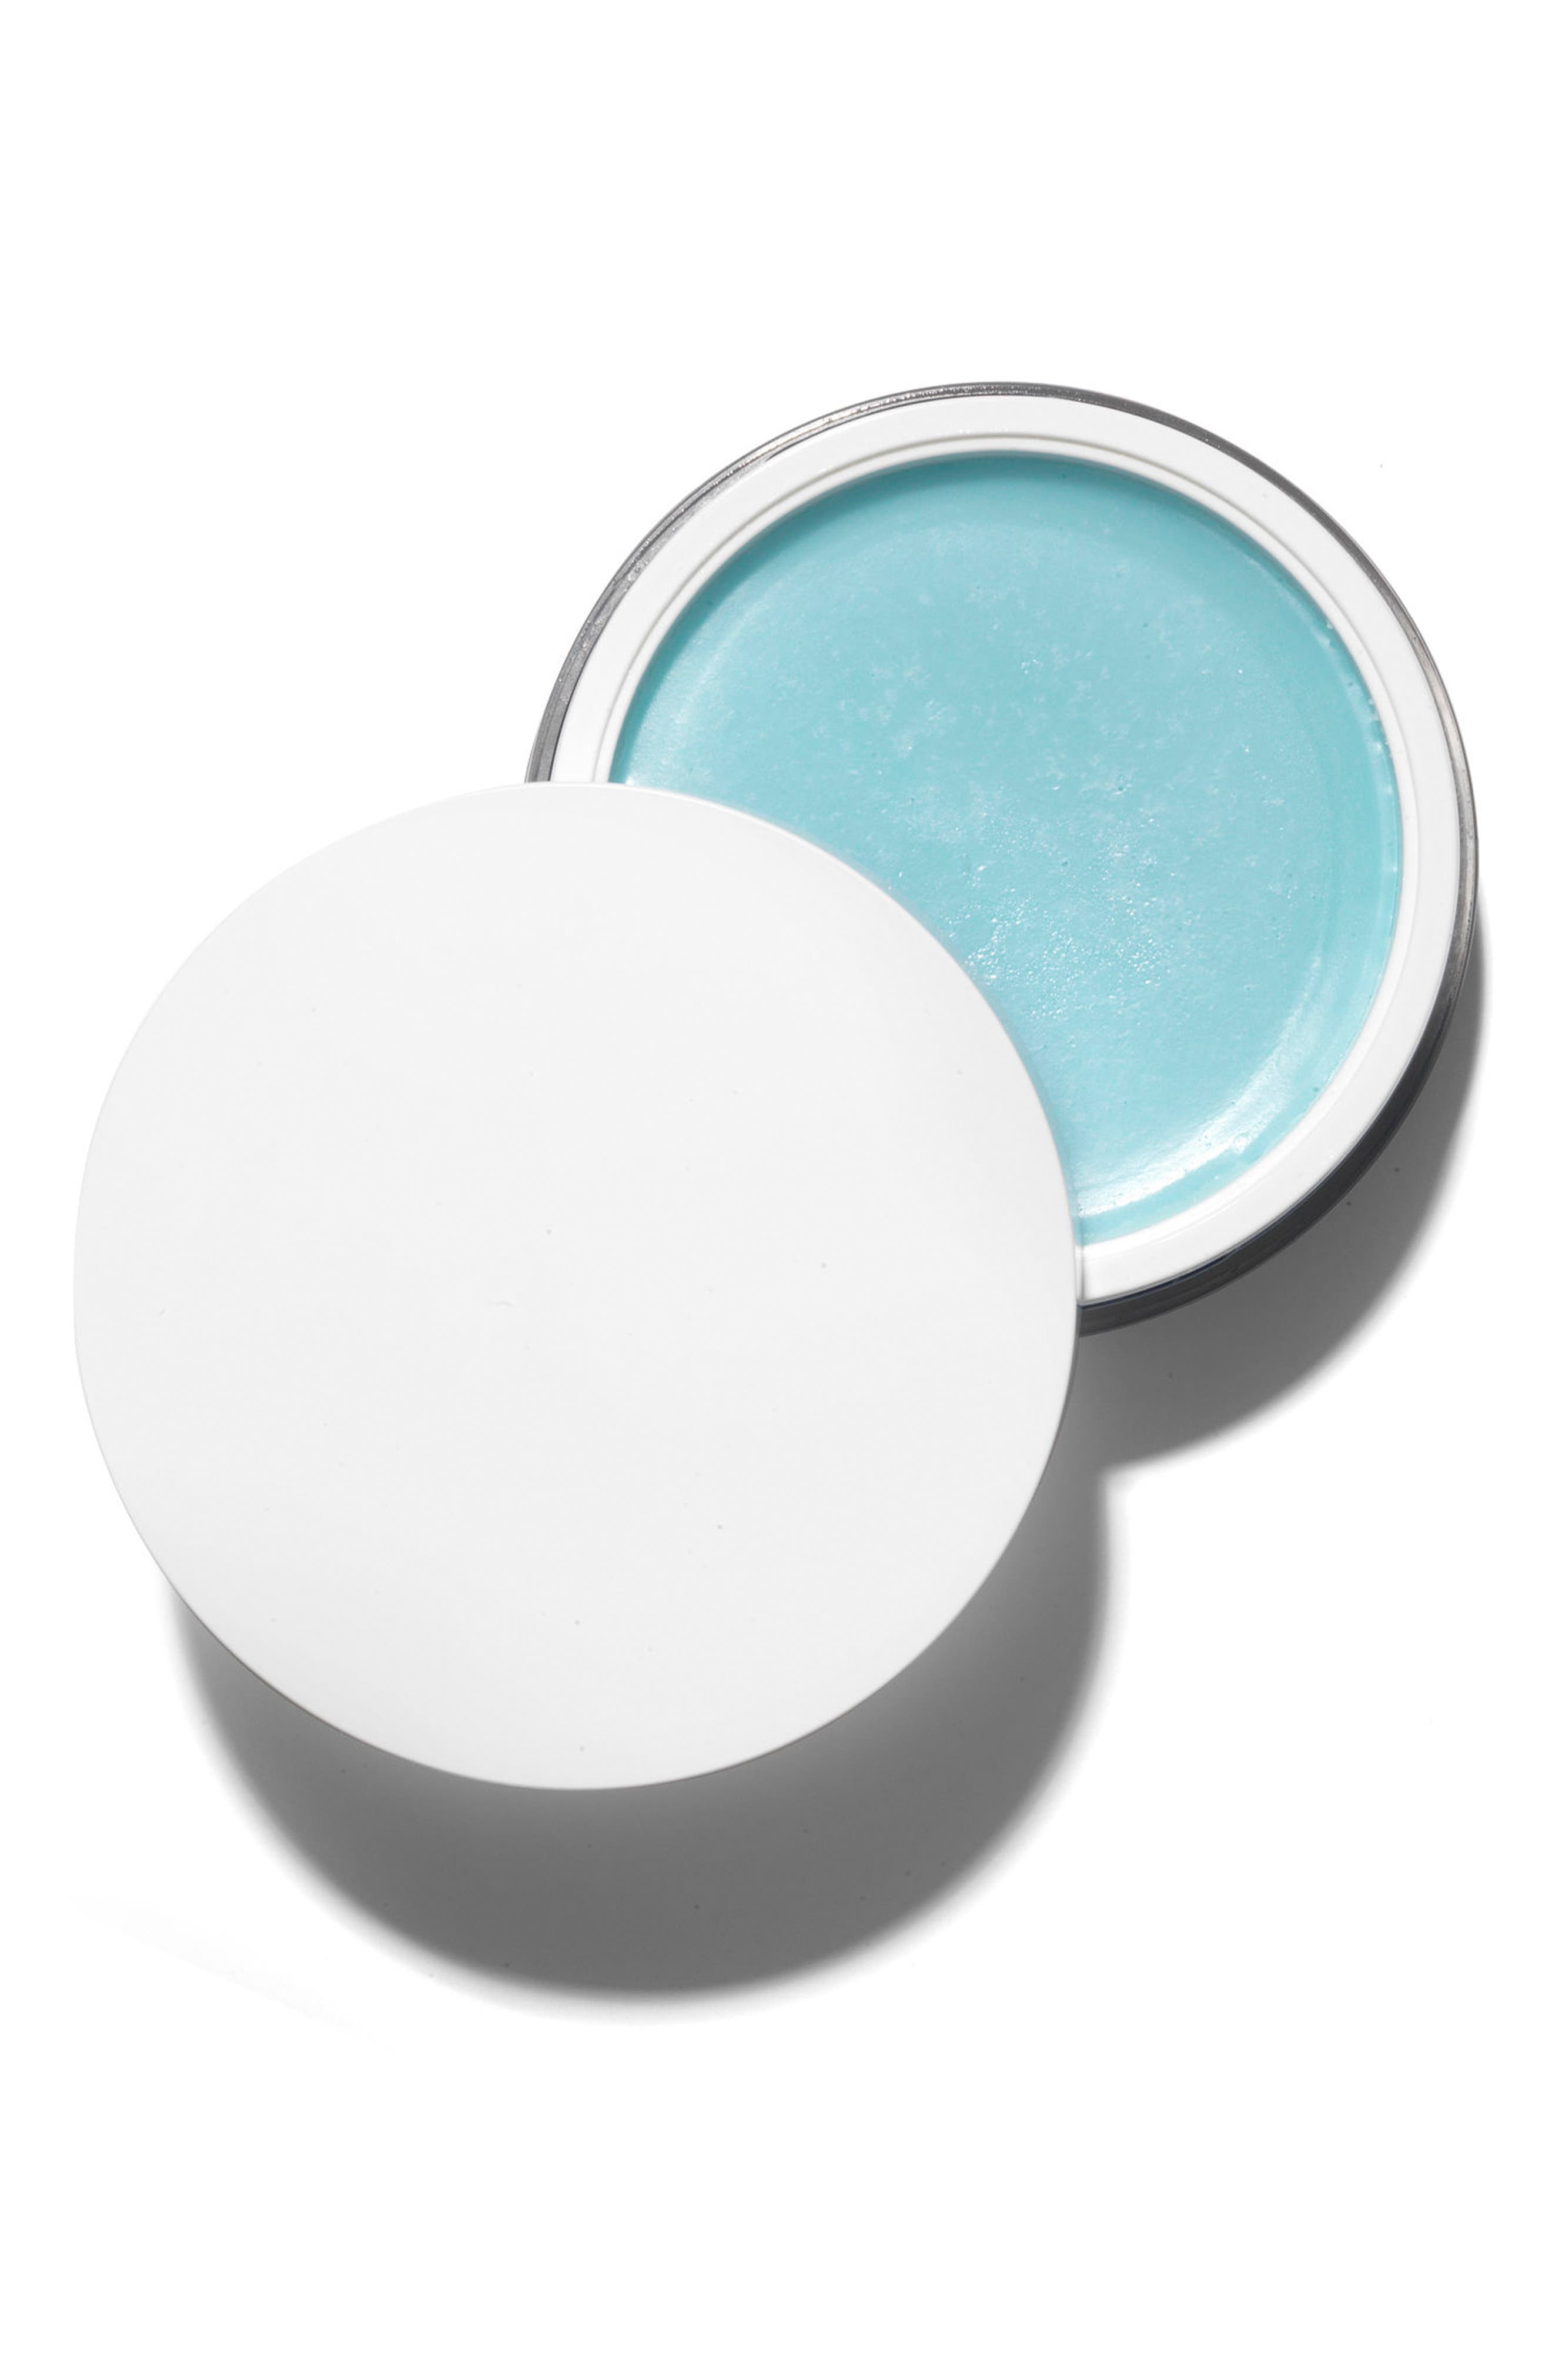 Alternate Image 3  - SPACE.NK.apothecary Sunday Riley Blue Moon Tranquility Cleansing Balm